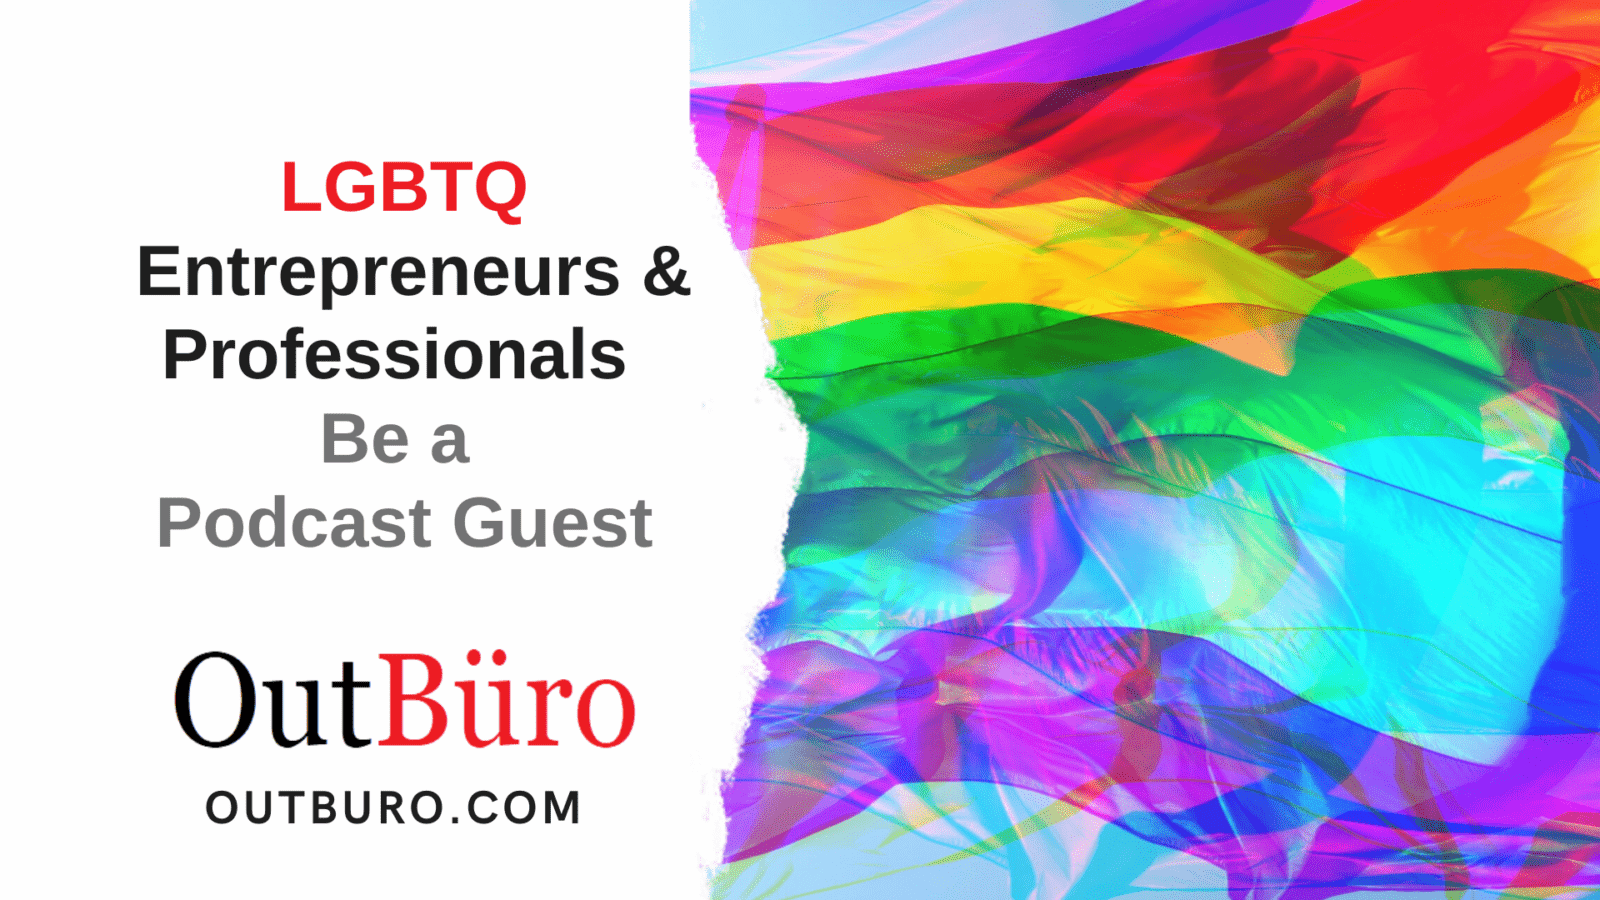 OutBuro Voices Podcast Be a Guest - LGBT Entrpreneurs GLBT Professionals Gay Business Owners Lesbian Leaders Queer Startups LGBTQ community